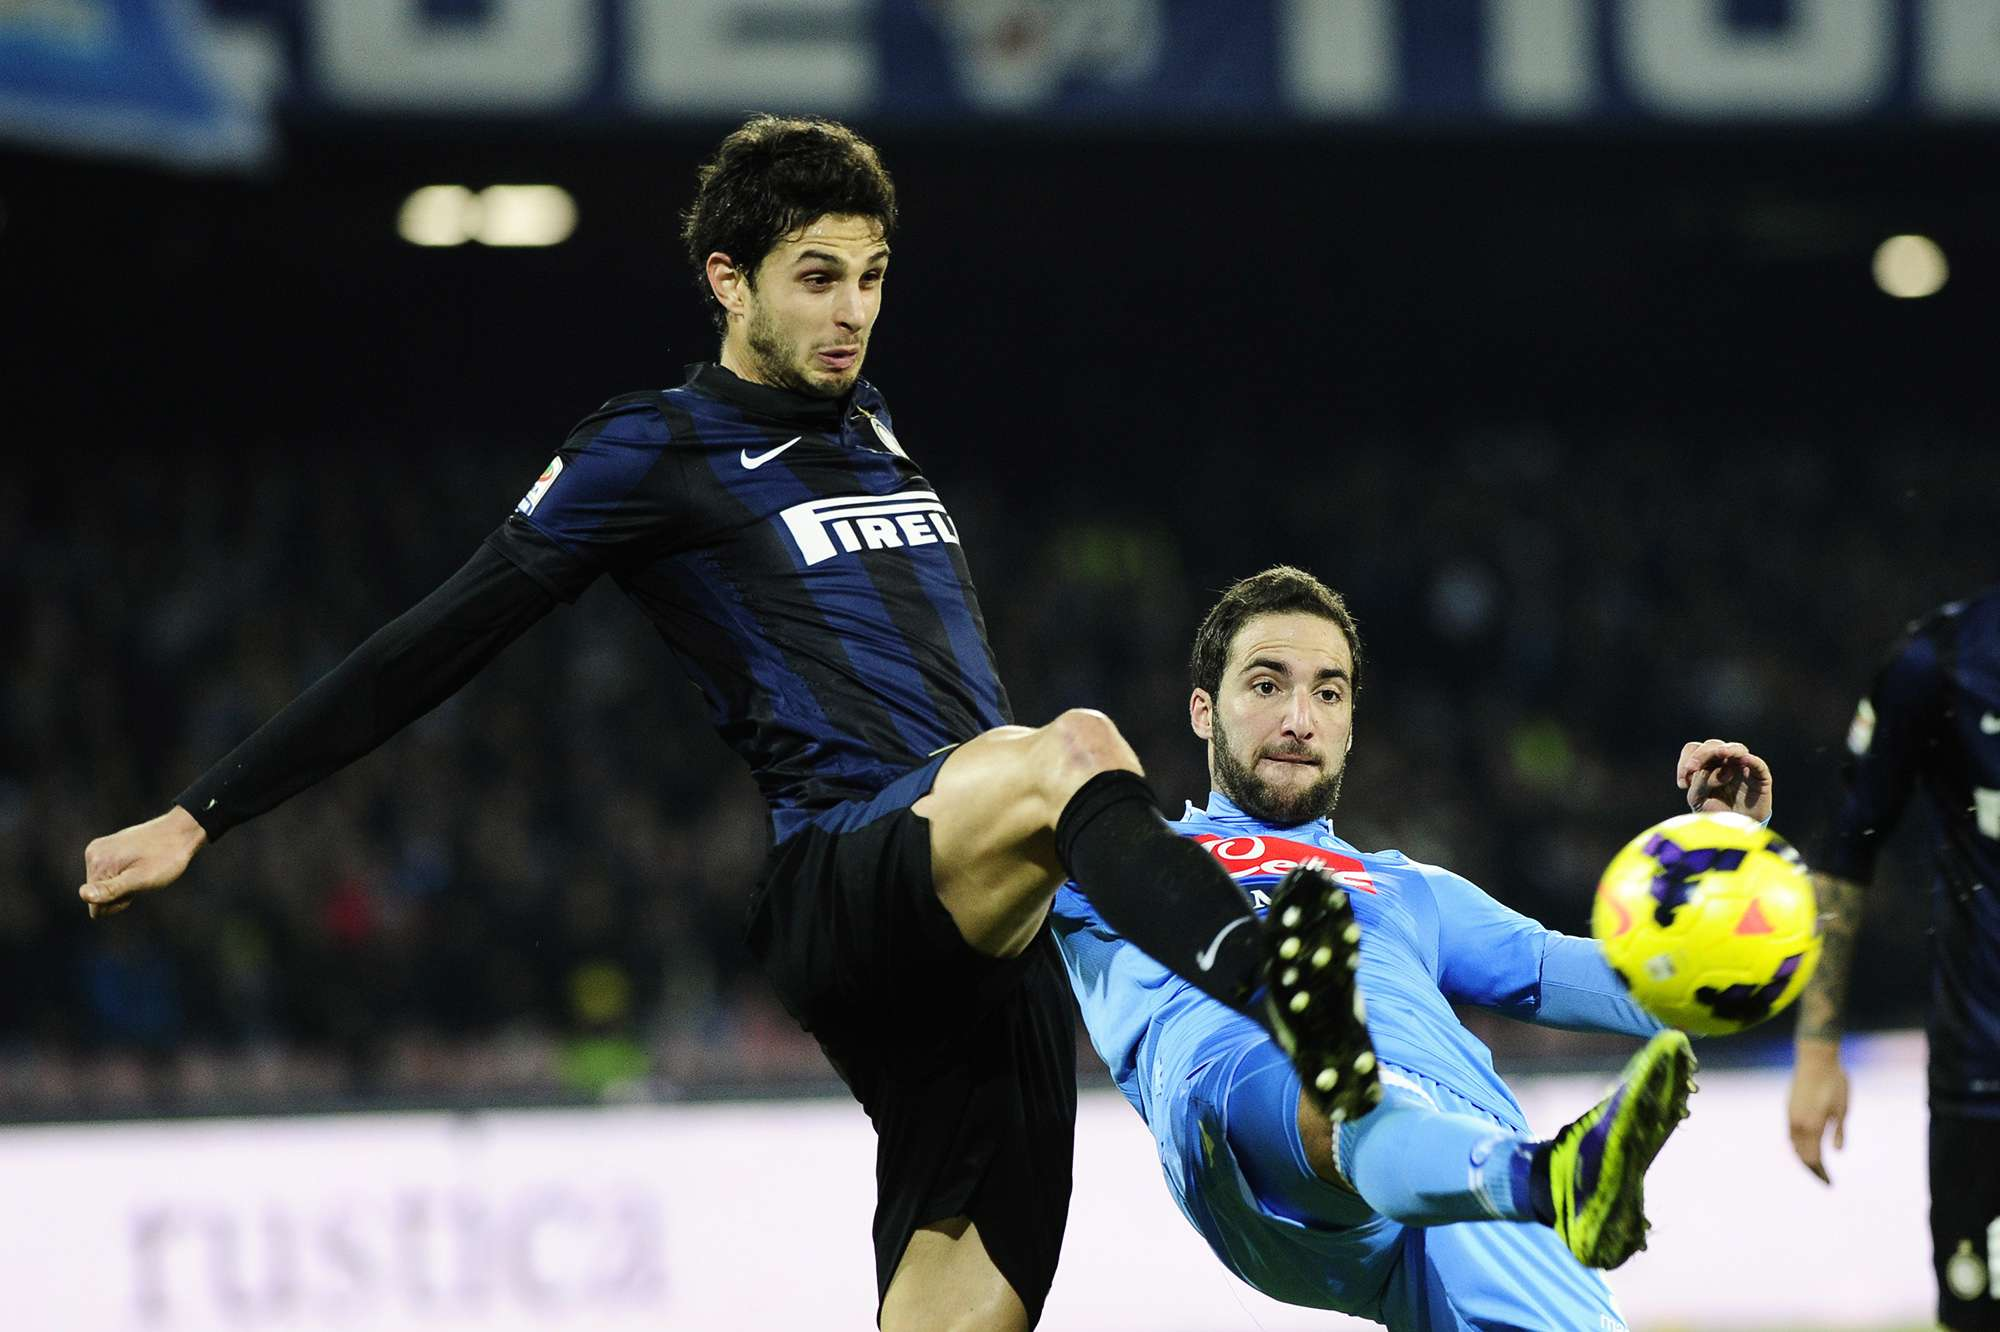 Ranocchia to replace Zanetti as Inter captain